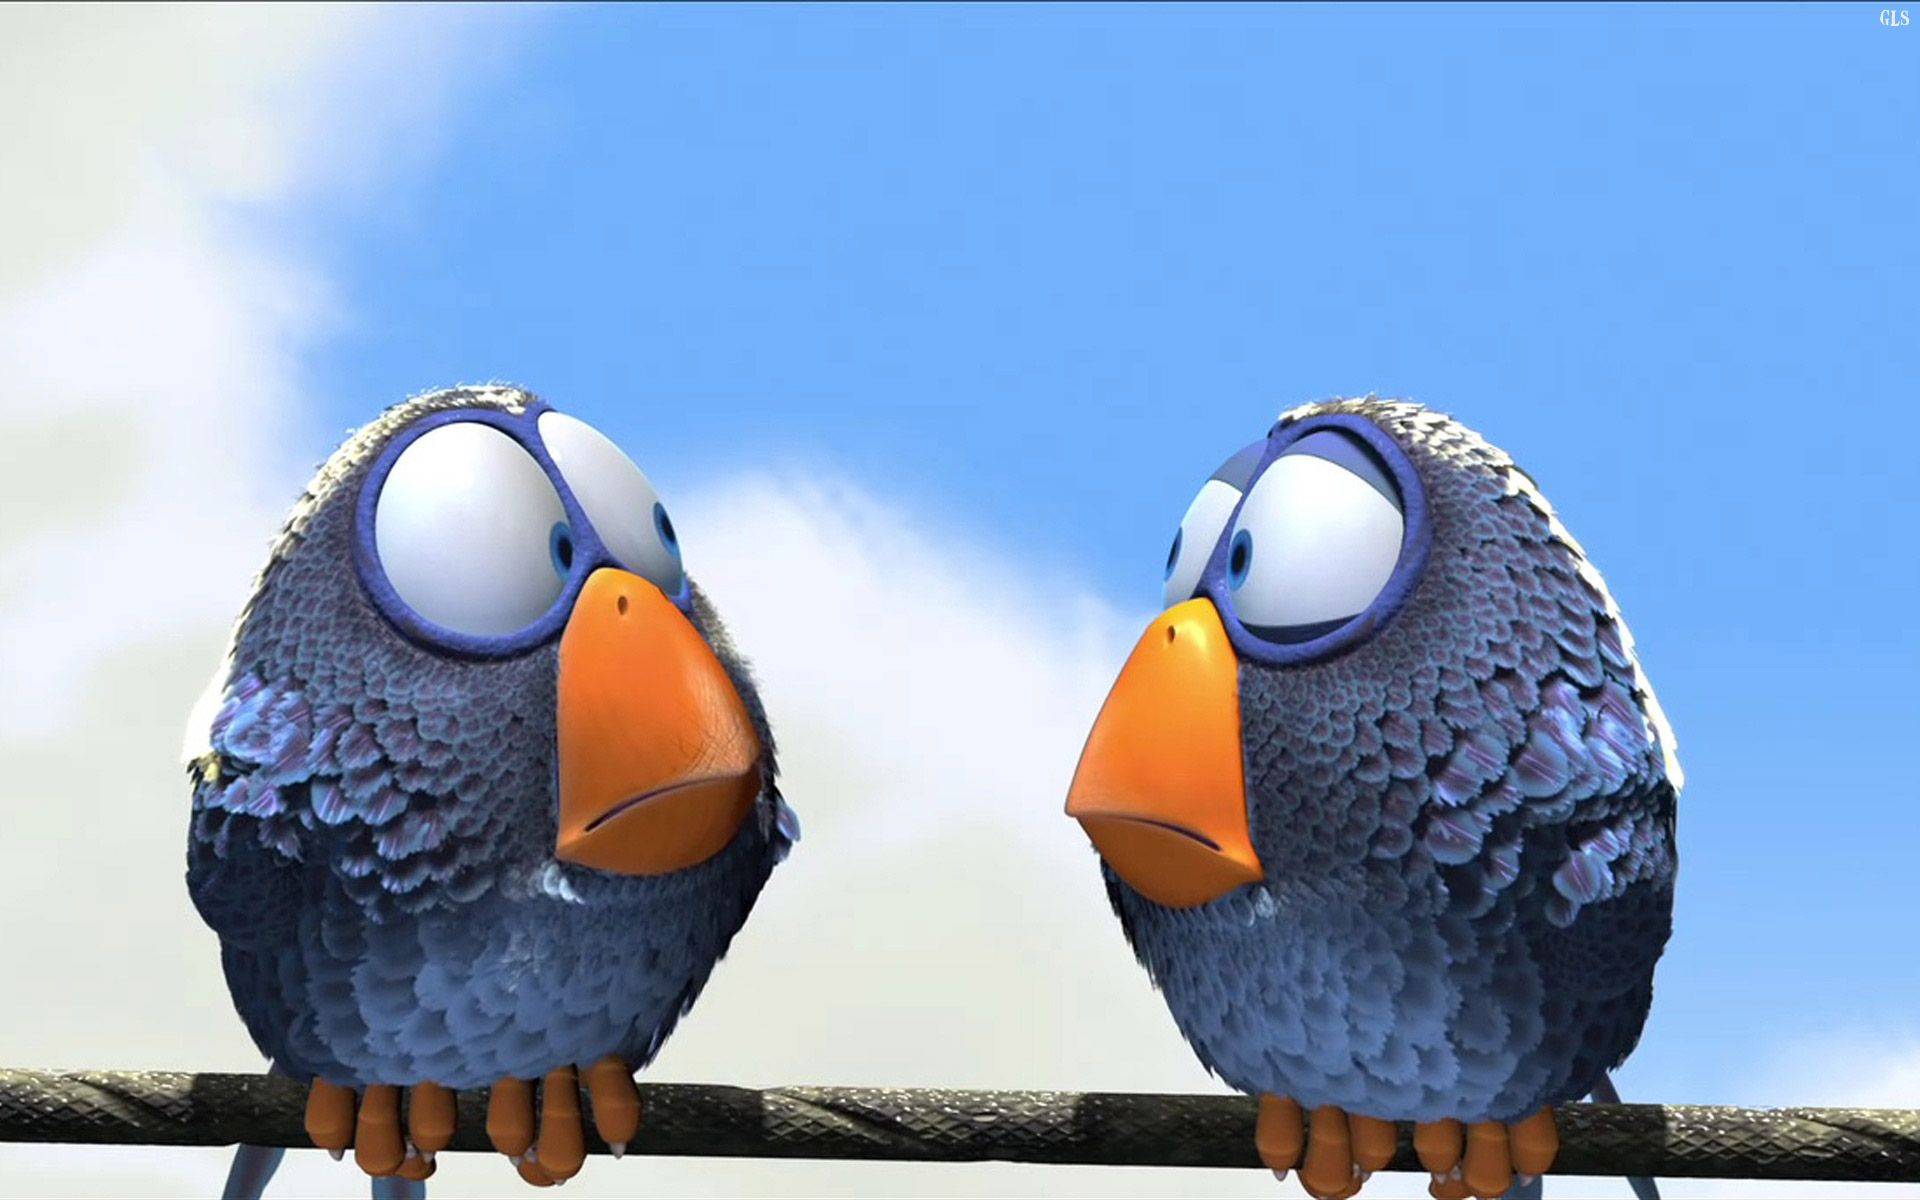 Twin Birds Wallpaper Free With Images Pixar Shorts Short Film Pixar